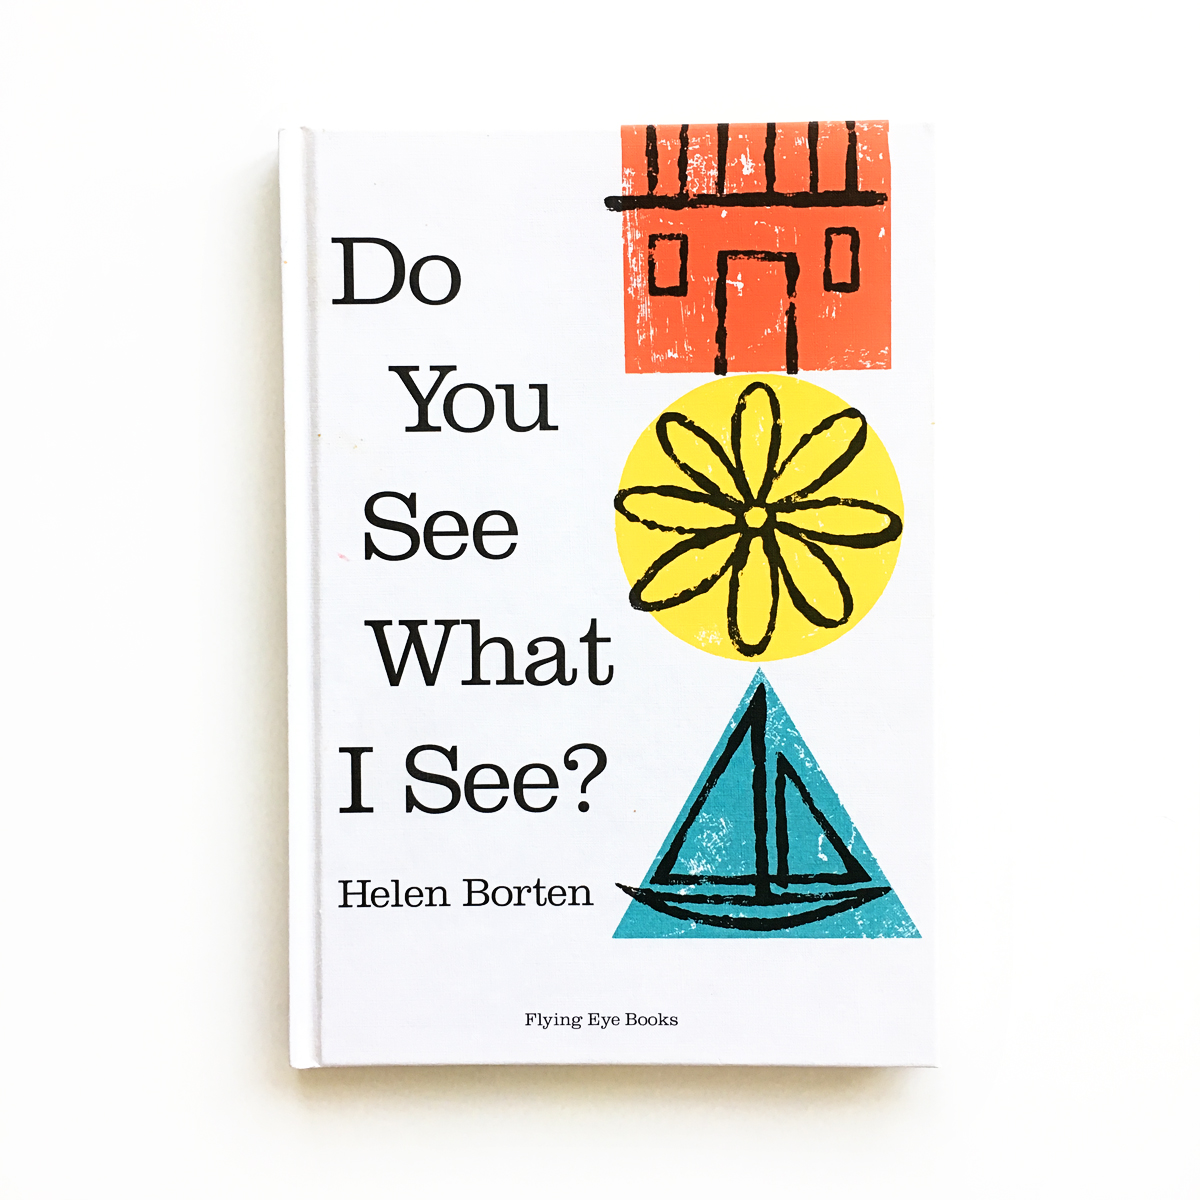 Do You See What I See? | Little Lit Book Series